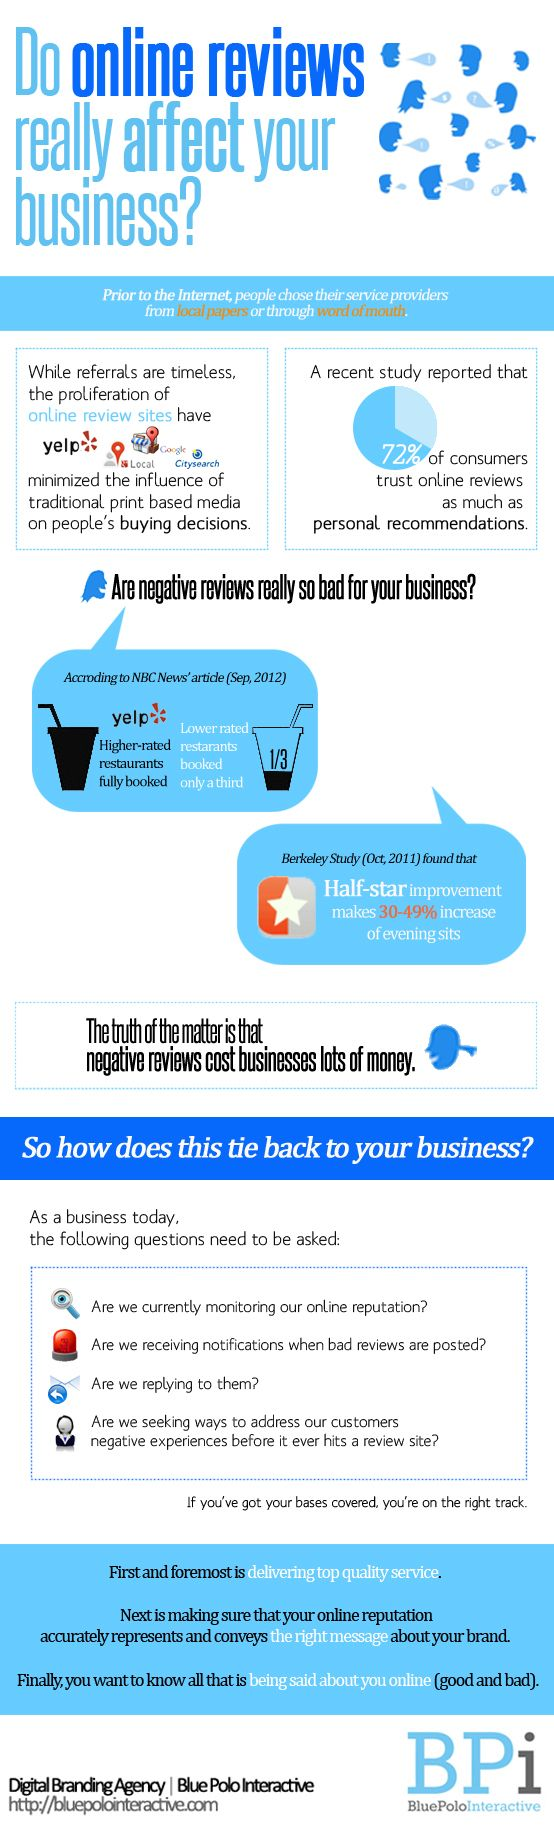 Do online reviews really affect your business? #OnlineReview #OnlineReputation http://bluepolointeractive.com